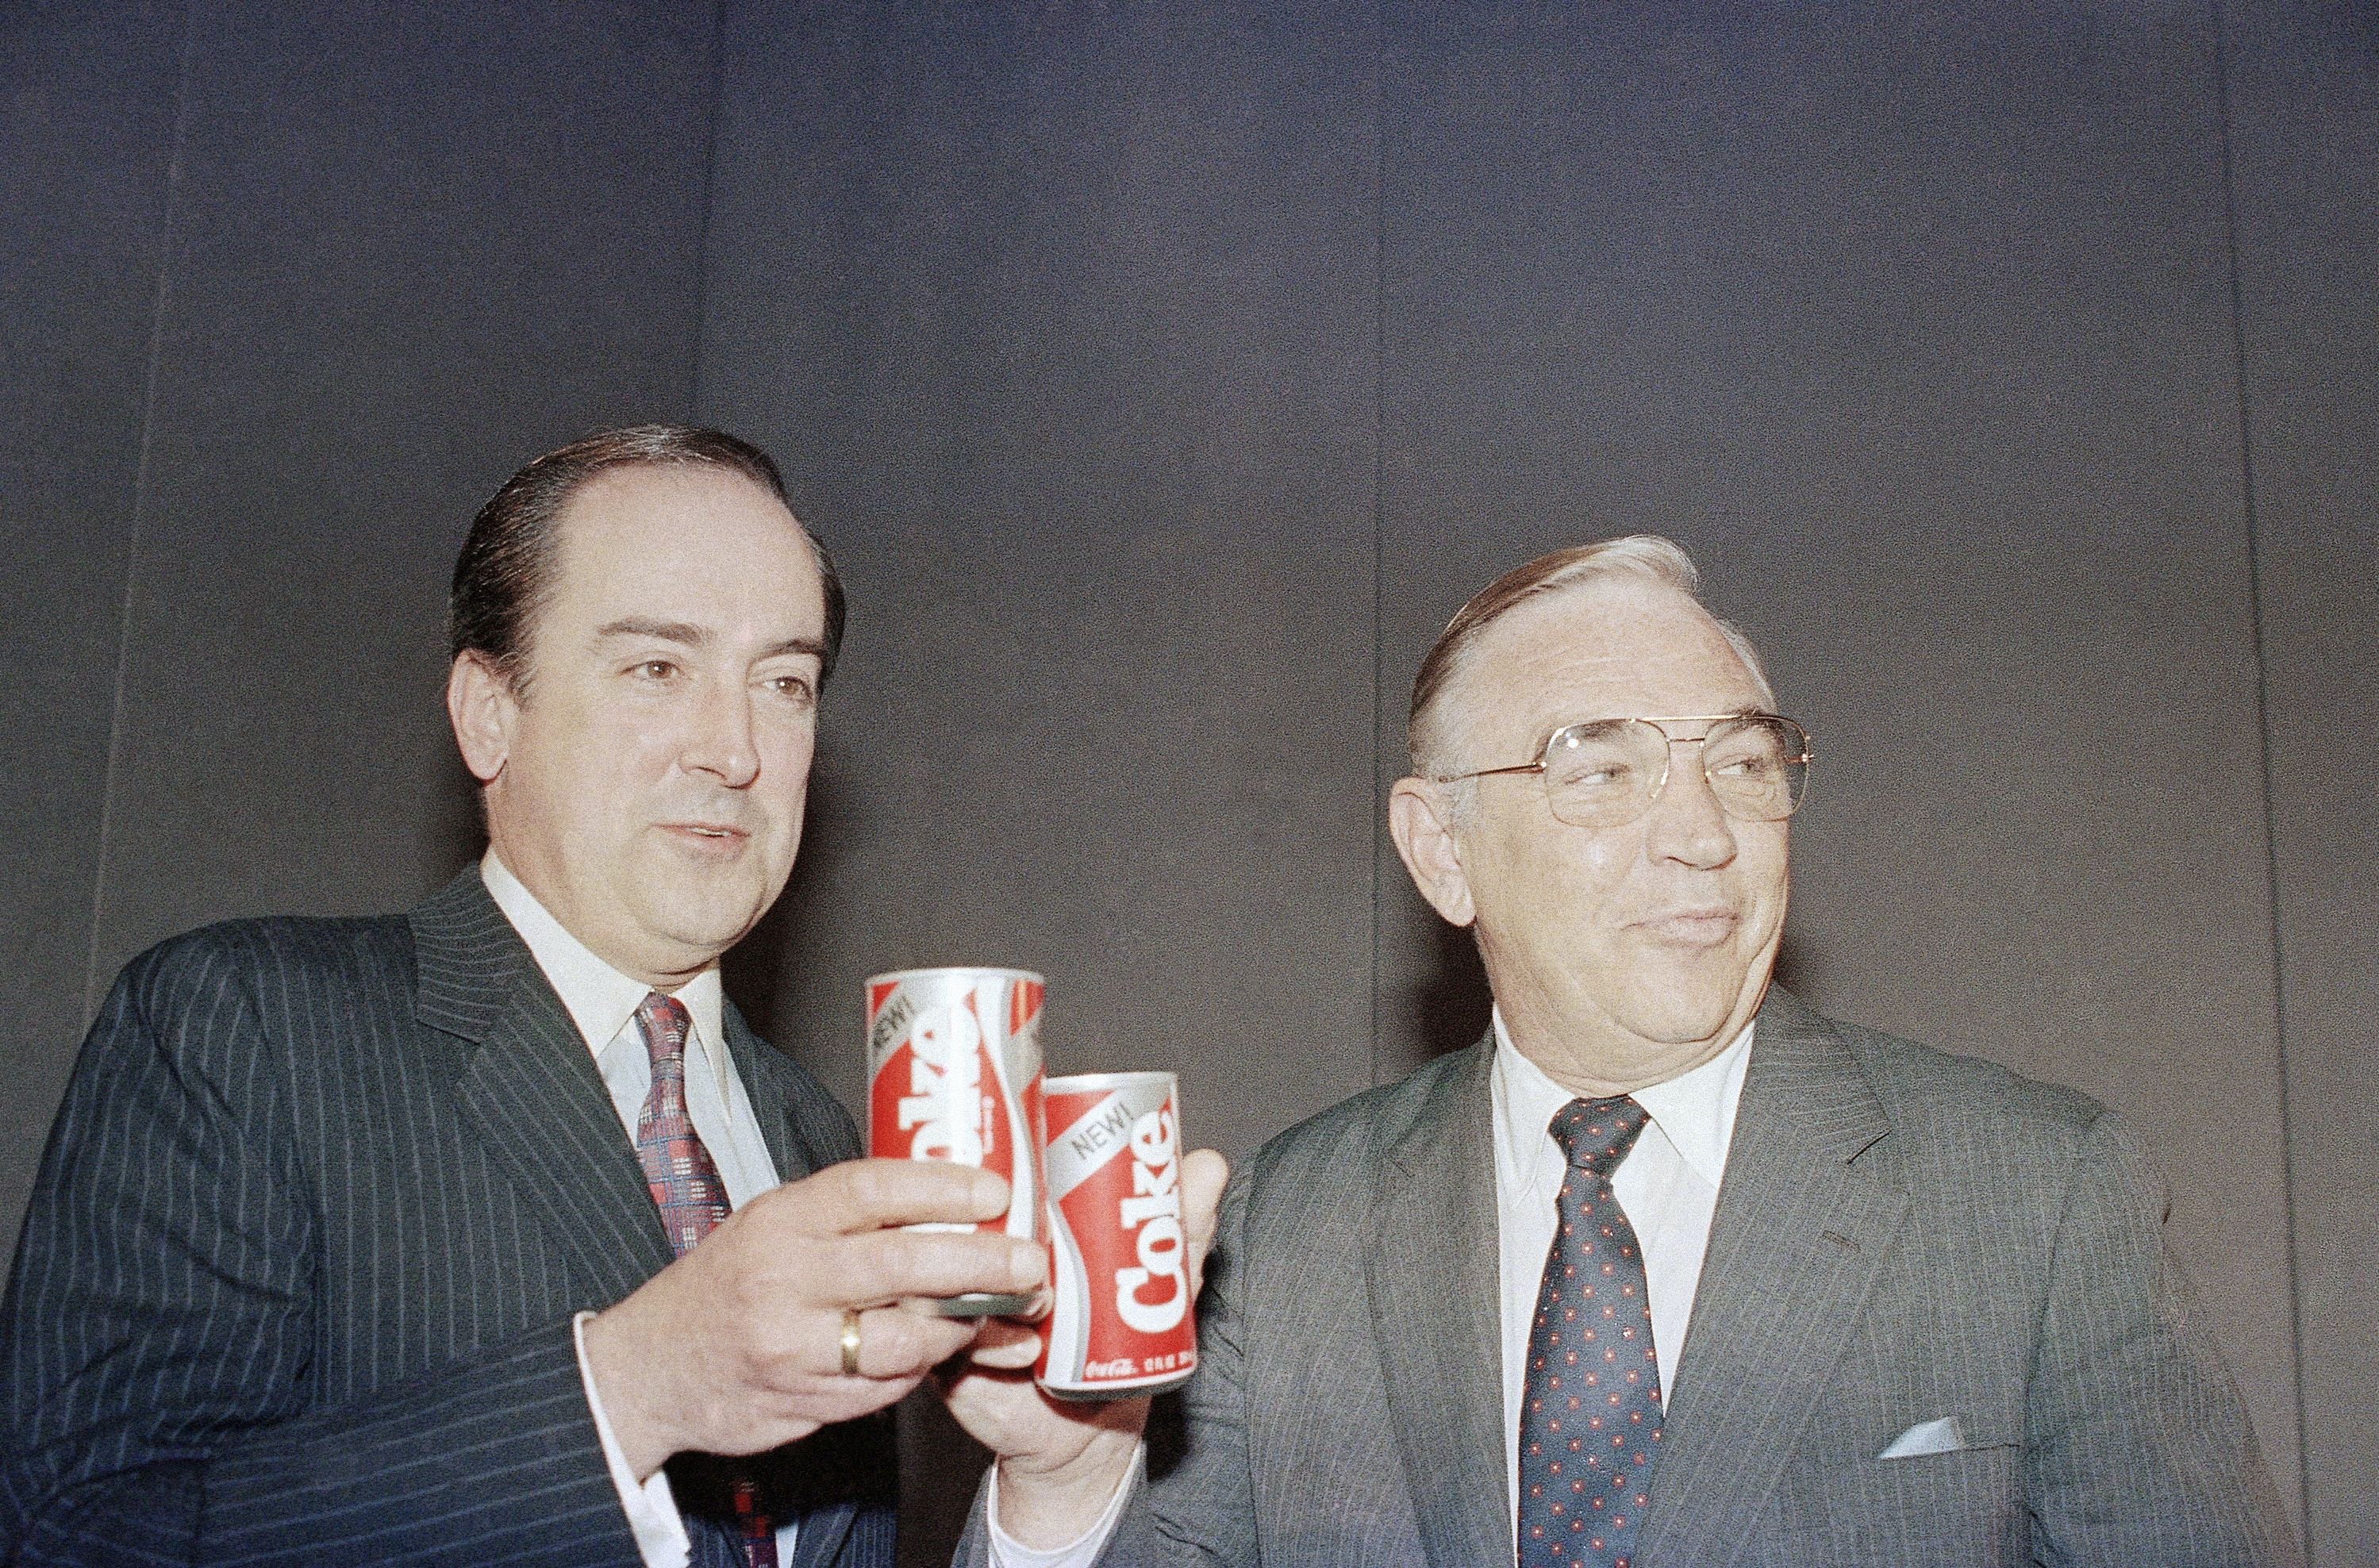 Coca-Cola executives Robert C. Goizueta and Donald R. Keough toast cans of 'New Coke' – a product rollout that's considered one of the biggest business blunders of all time.